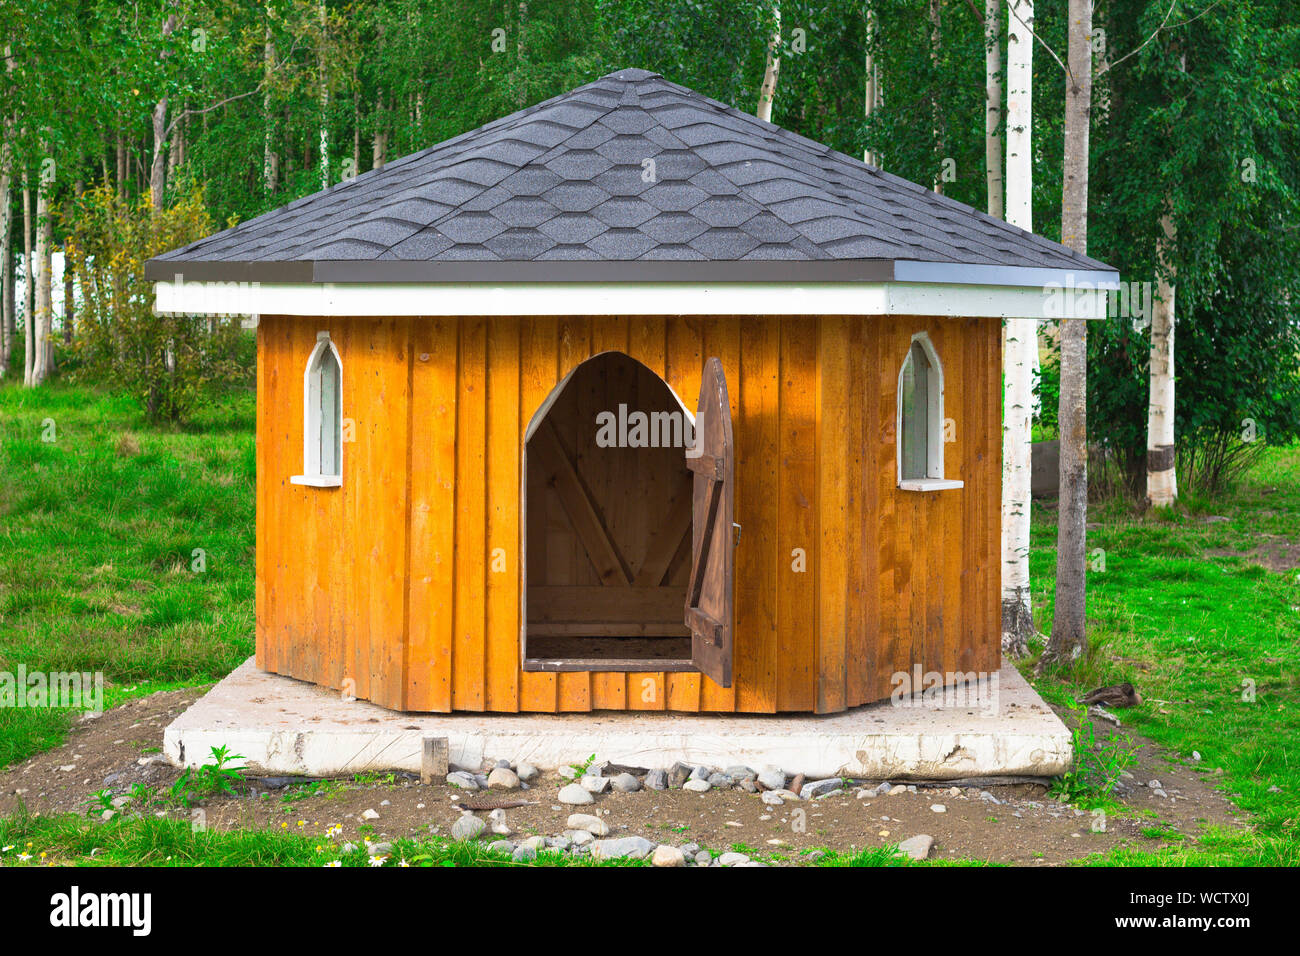 A Small Wooden House For Animals The Roof Of The House Is Black